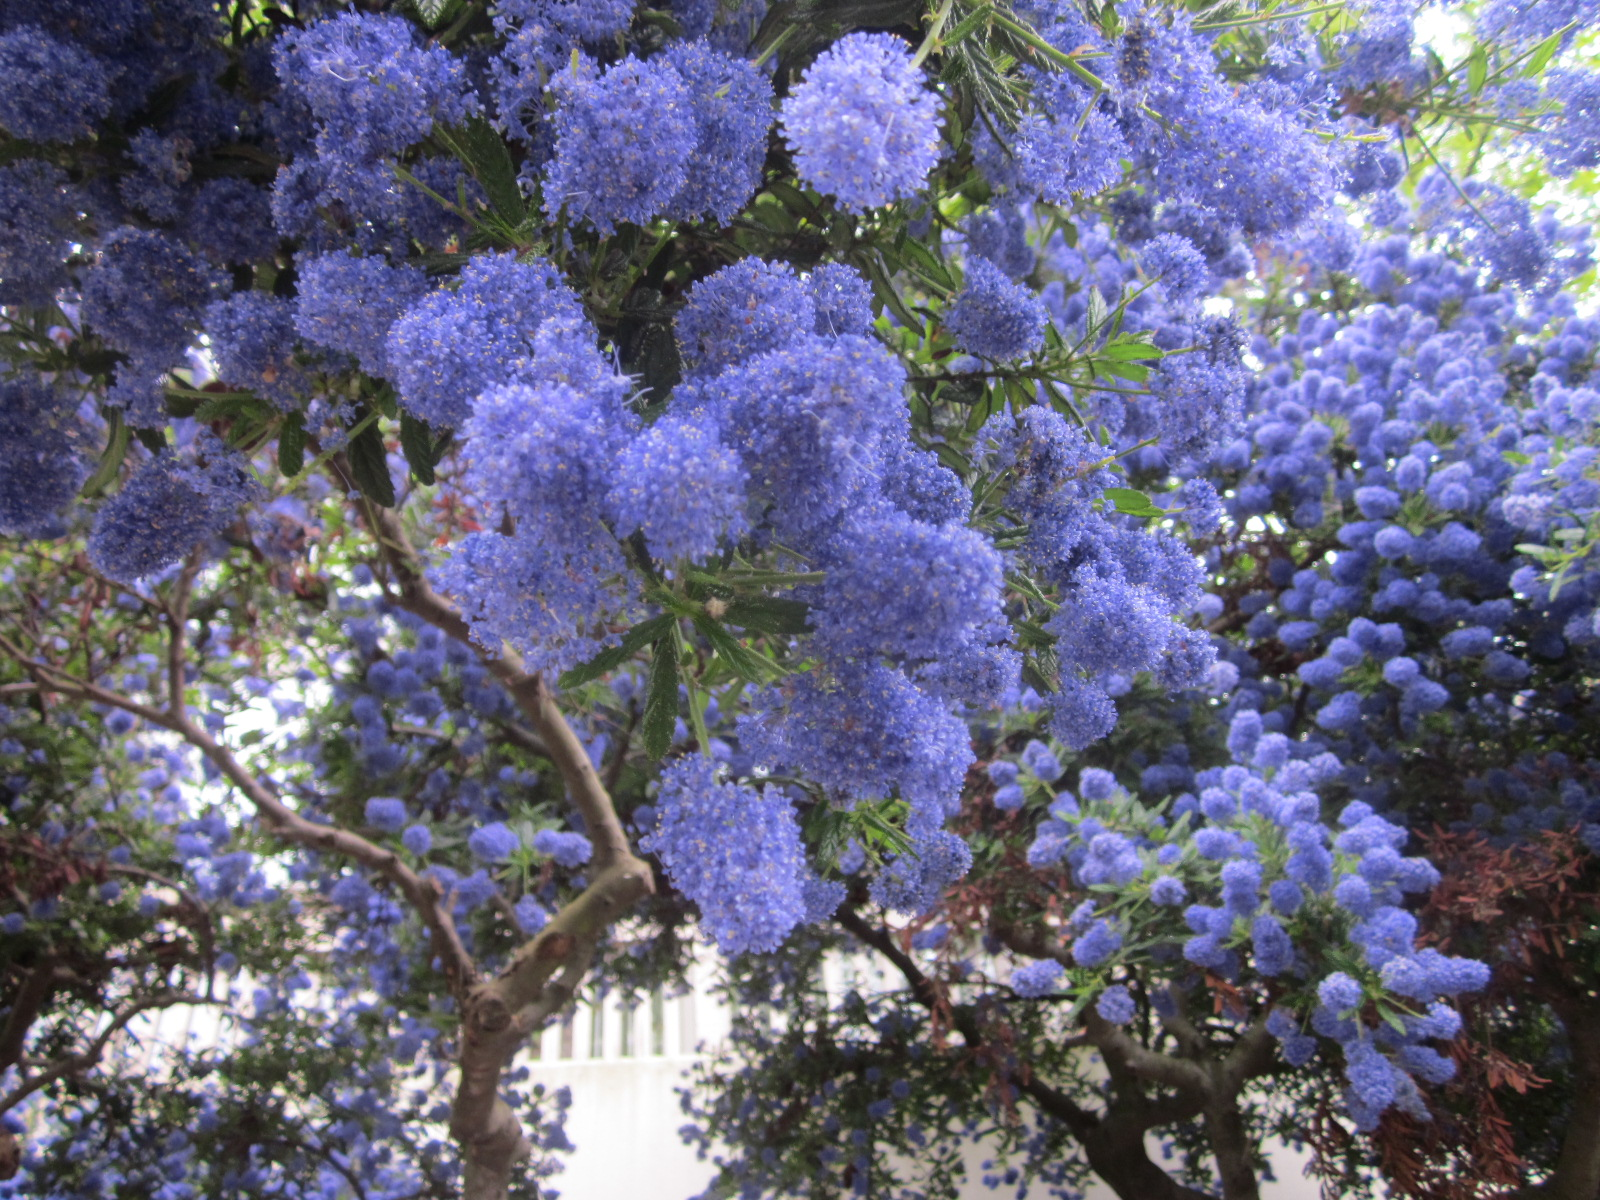 Here and there vancouver eats ceanothus is an evergreen shrub or small tree with many clusters of small blue flower clumps in spring and summer bees swarm to the bright flowers in early izmirmasajfo